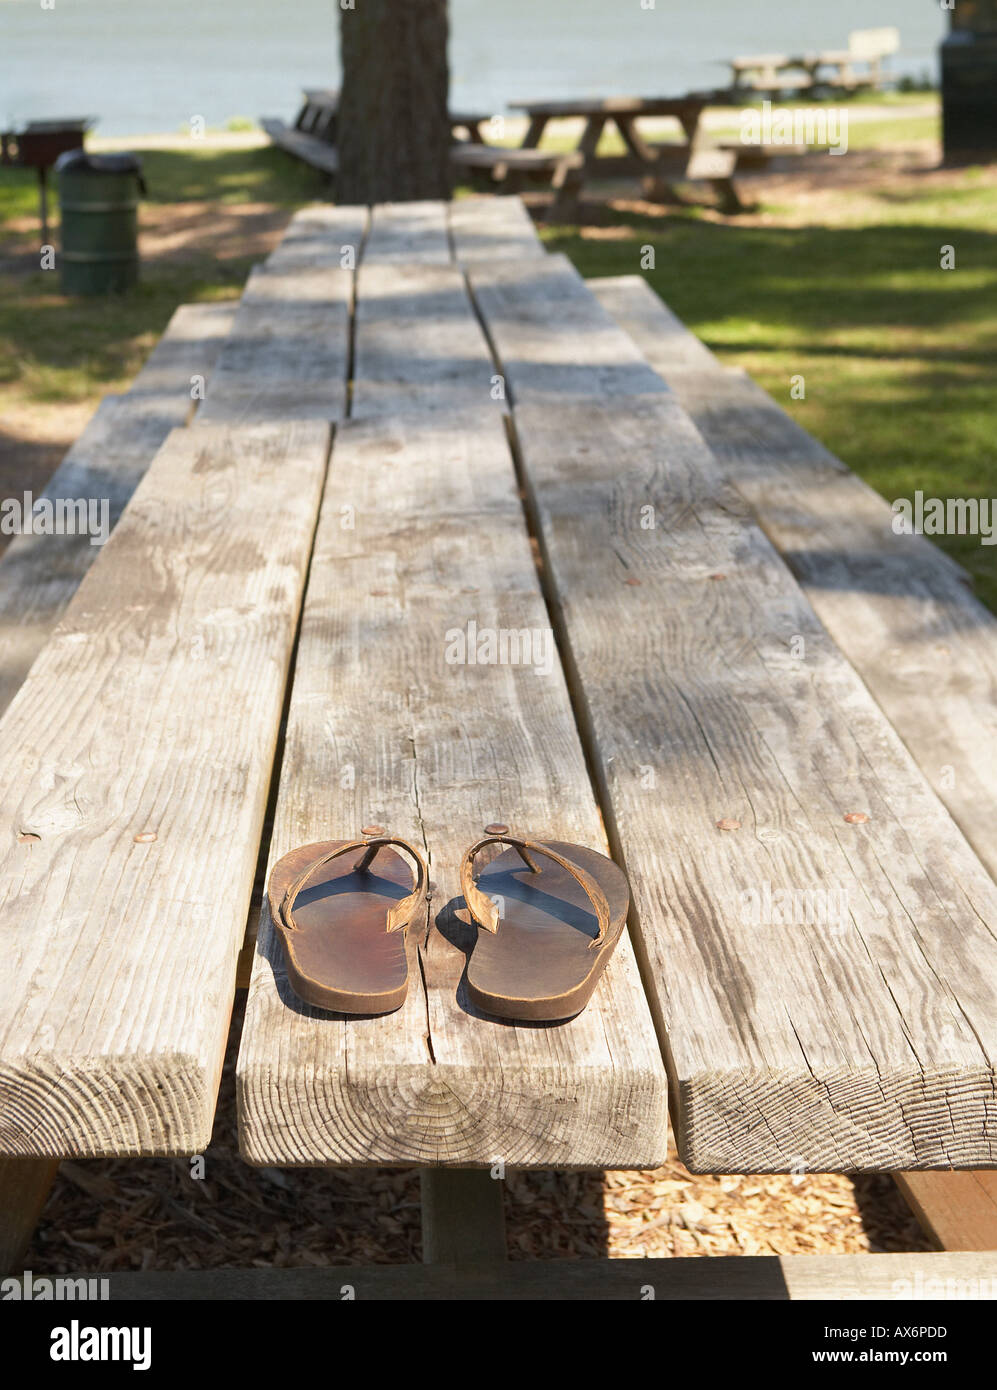 Sandals on a picnic bench - Stock Image